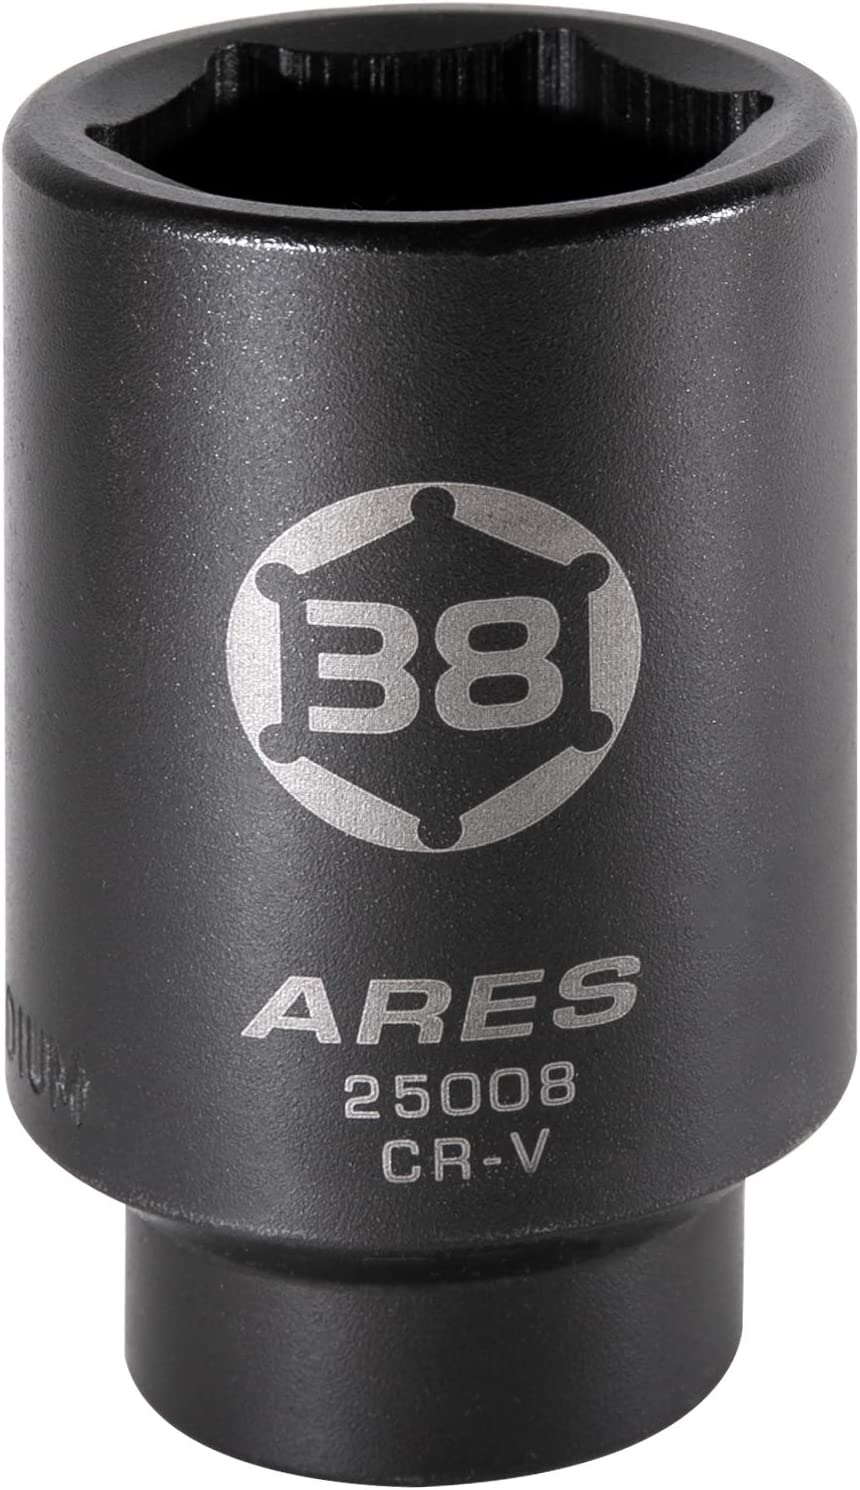 Extra Deep Impact Socket for Easy Removal of Axle Shaft Nuts ARES 25005-1//2-Inch Drive 6 Point Axle Nut Socket 34MM